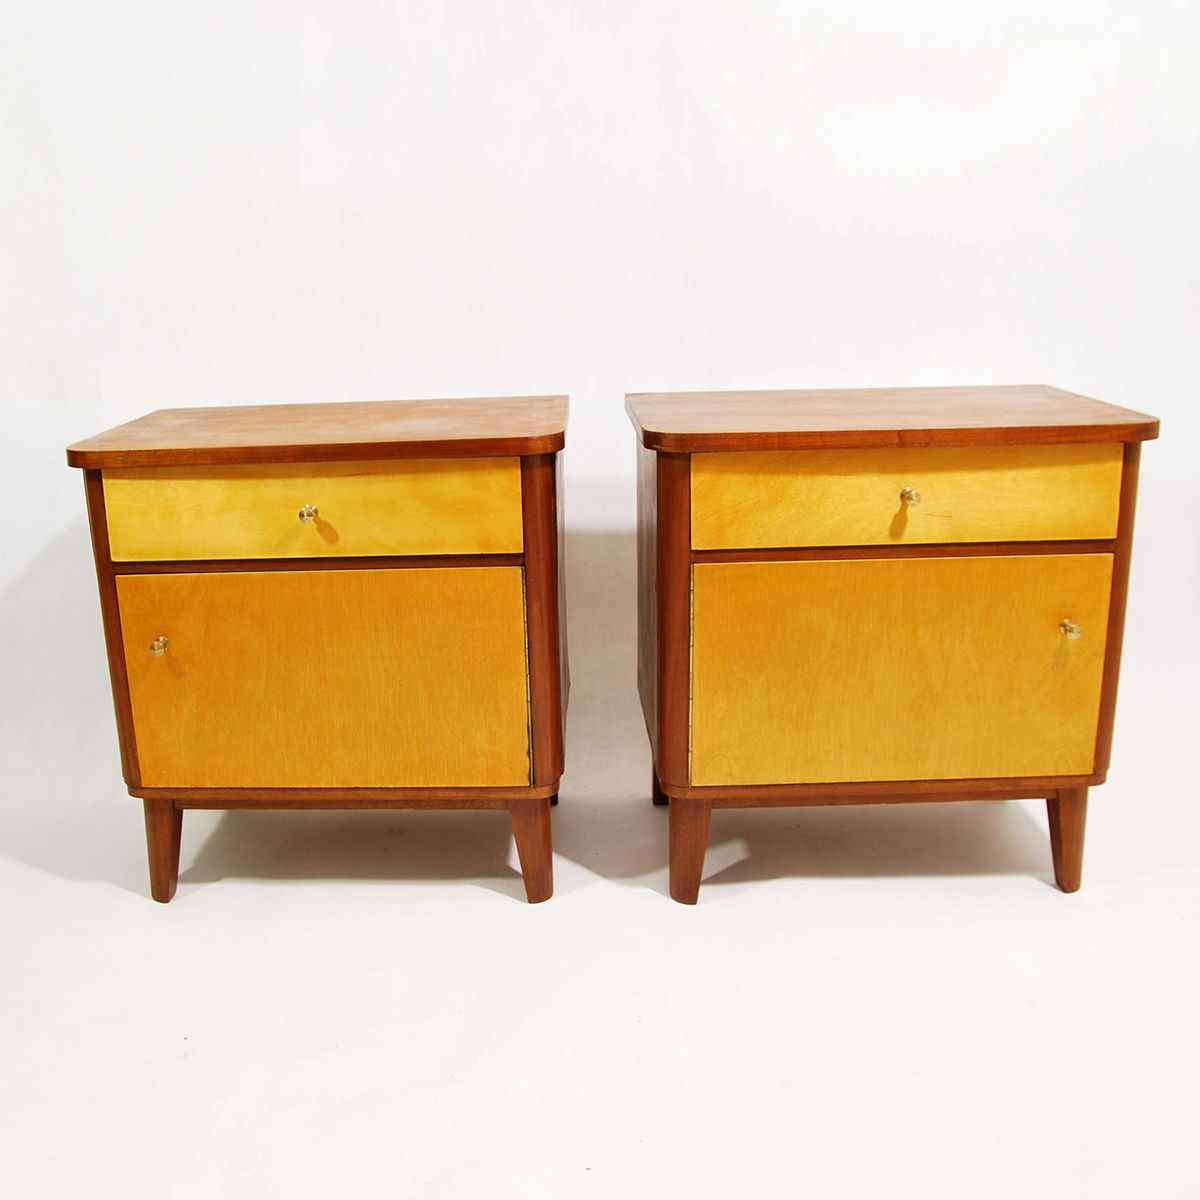 just cabinets german cabinets 1970s set of 2 for at pamono 18034